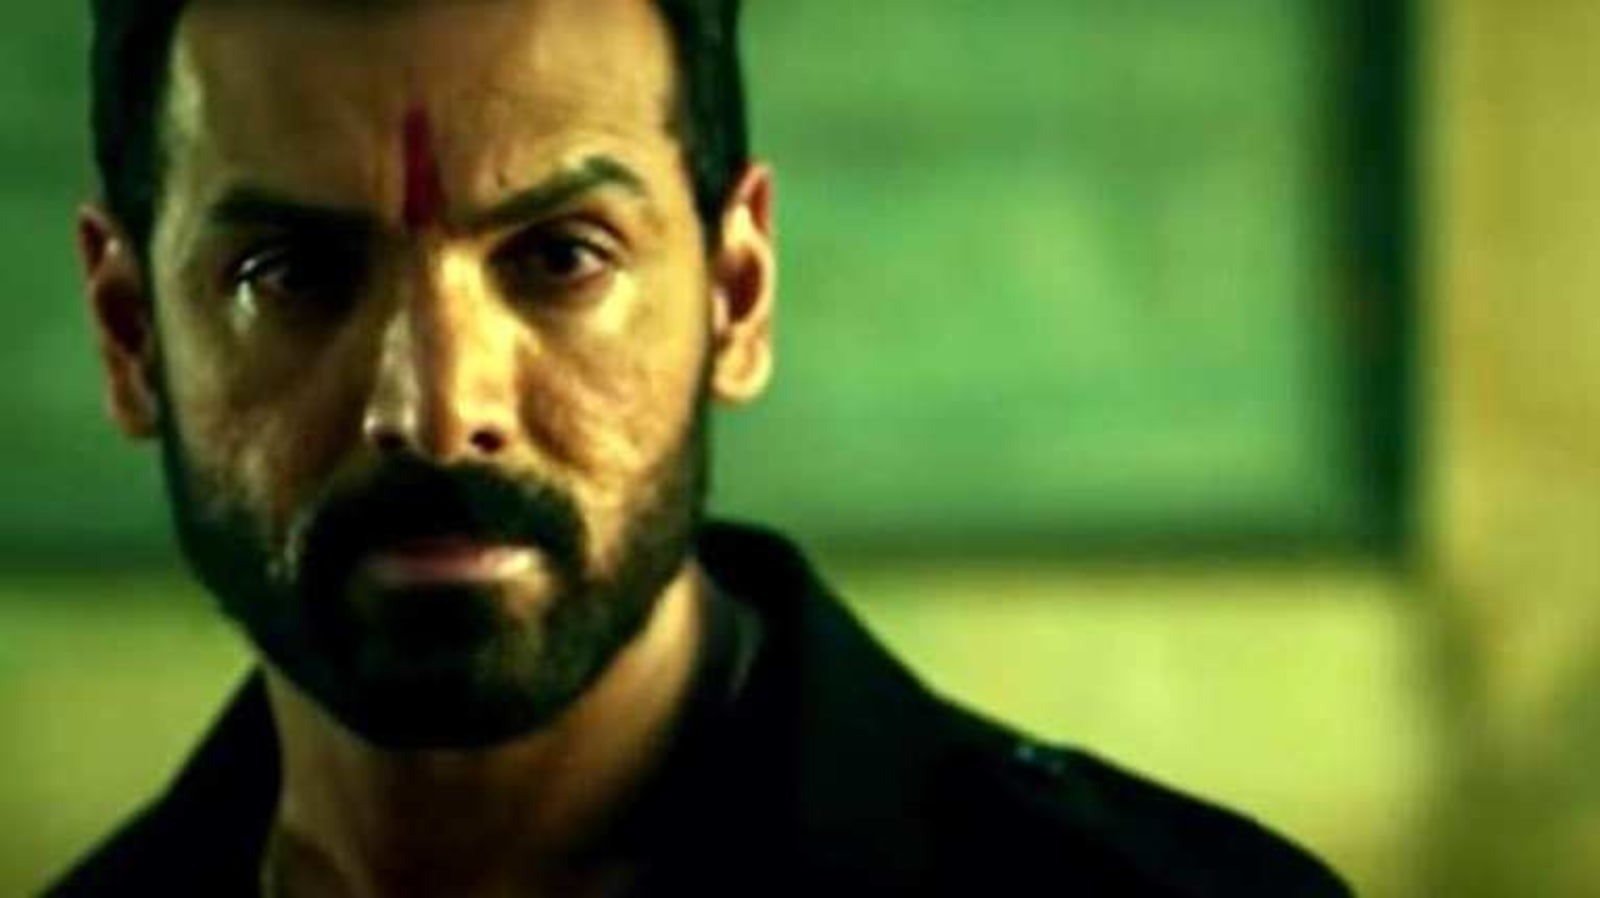 Mumbai Saga trailer: Watch John Abraham, Emraan Hashmi battle it out on Mumbai streets - Hindustan Times